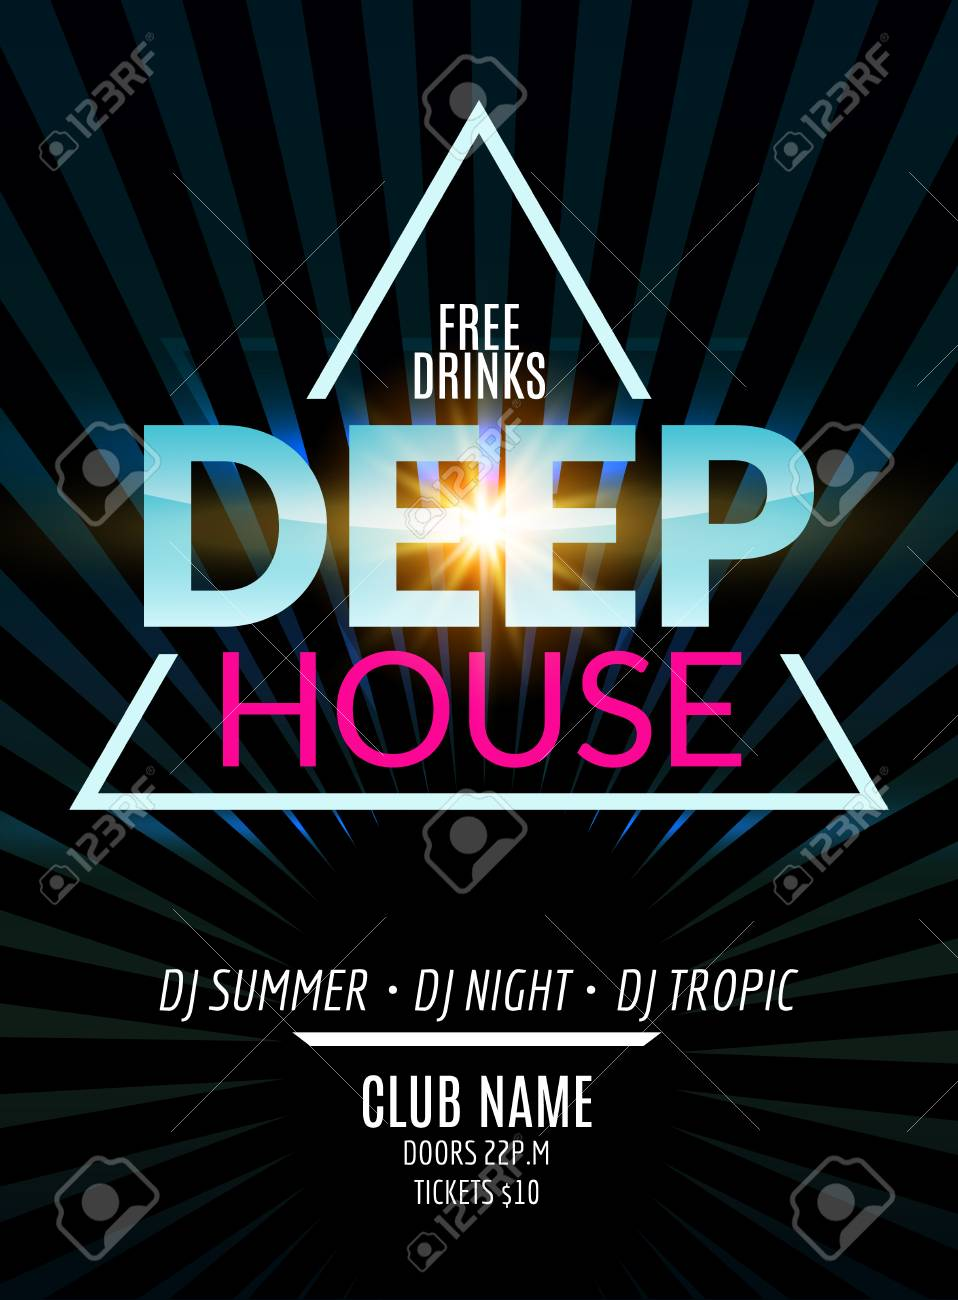 Disco Party Flyer Design Dance Banner For Music Club Disco Royalty Free Cliparts Vectors And Stock Illustration Image 71501661